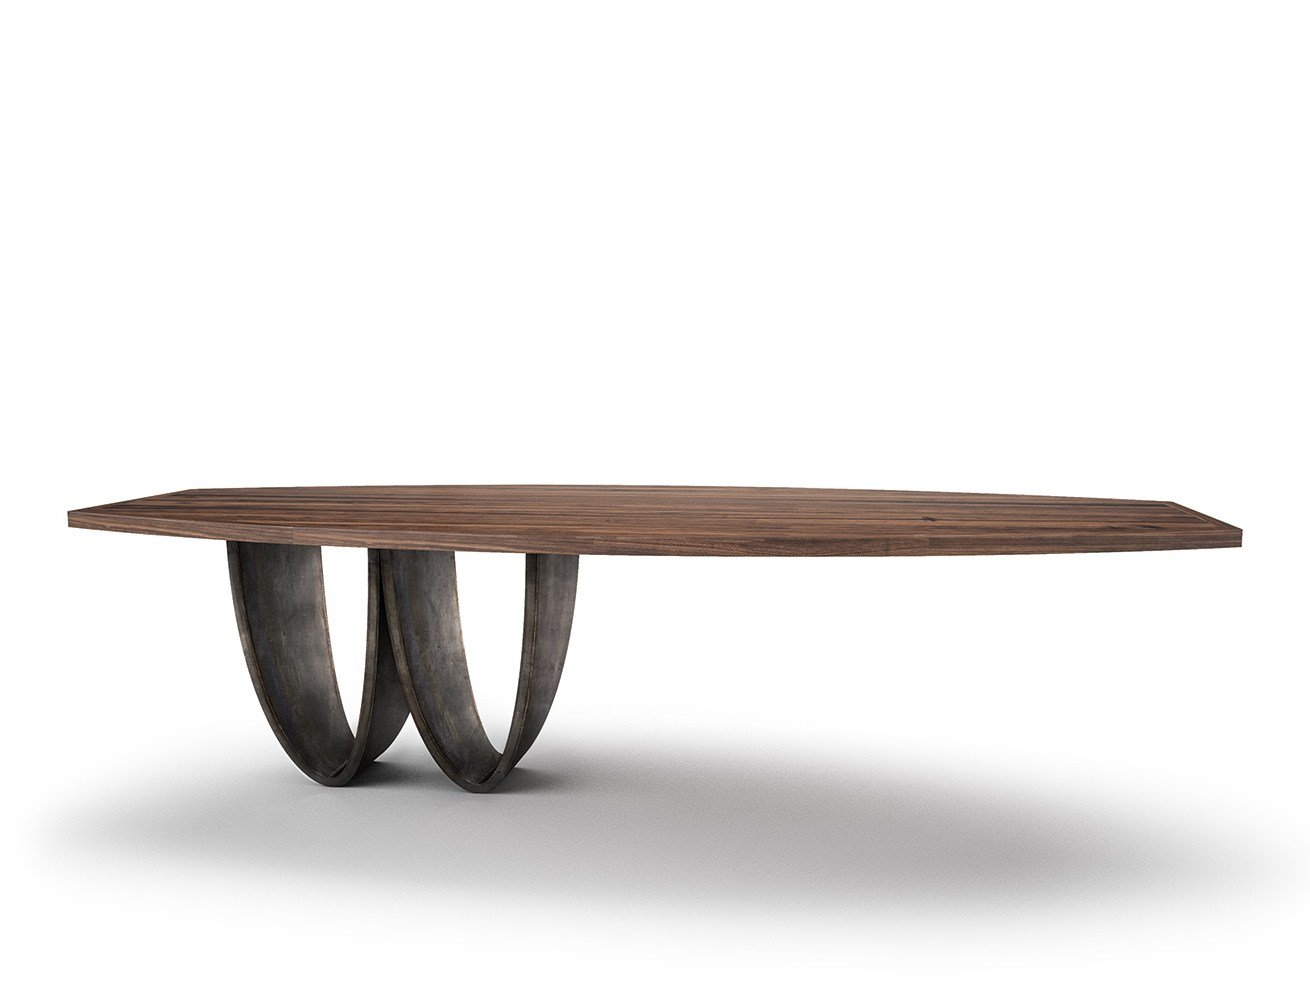 Solid wood dining table with steel base BOWI by Belfakto : BOWI Belfakto 281705 rele0895a42 from www.archiproducts.com size 1310 x 982 jpeg 78kB